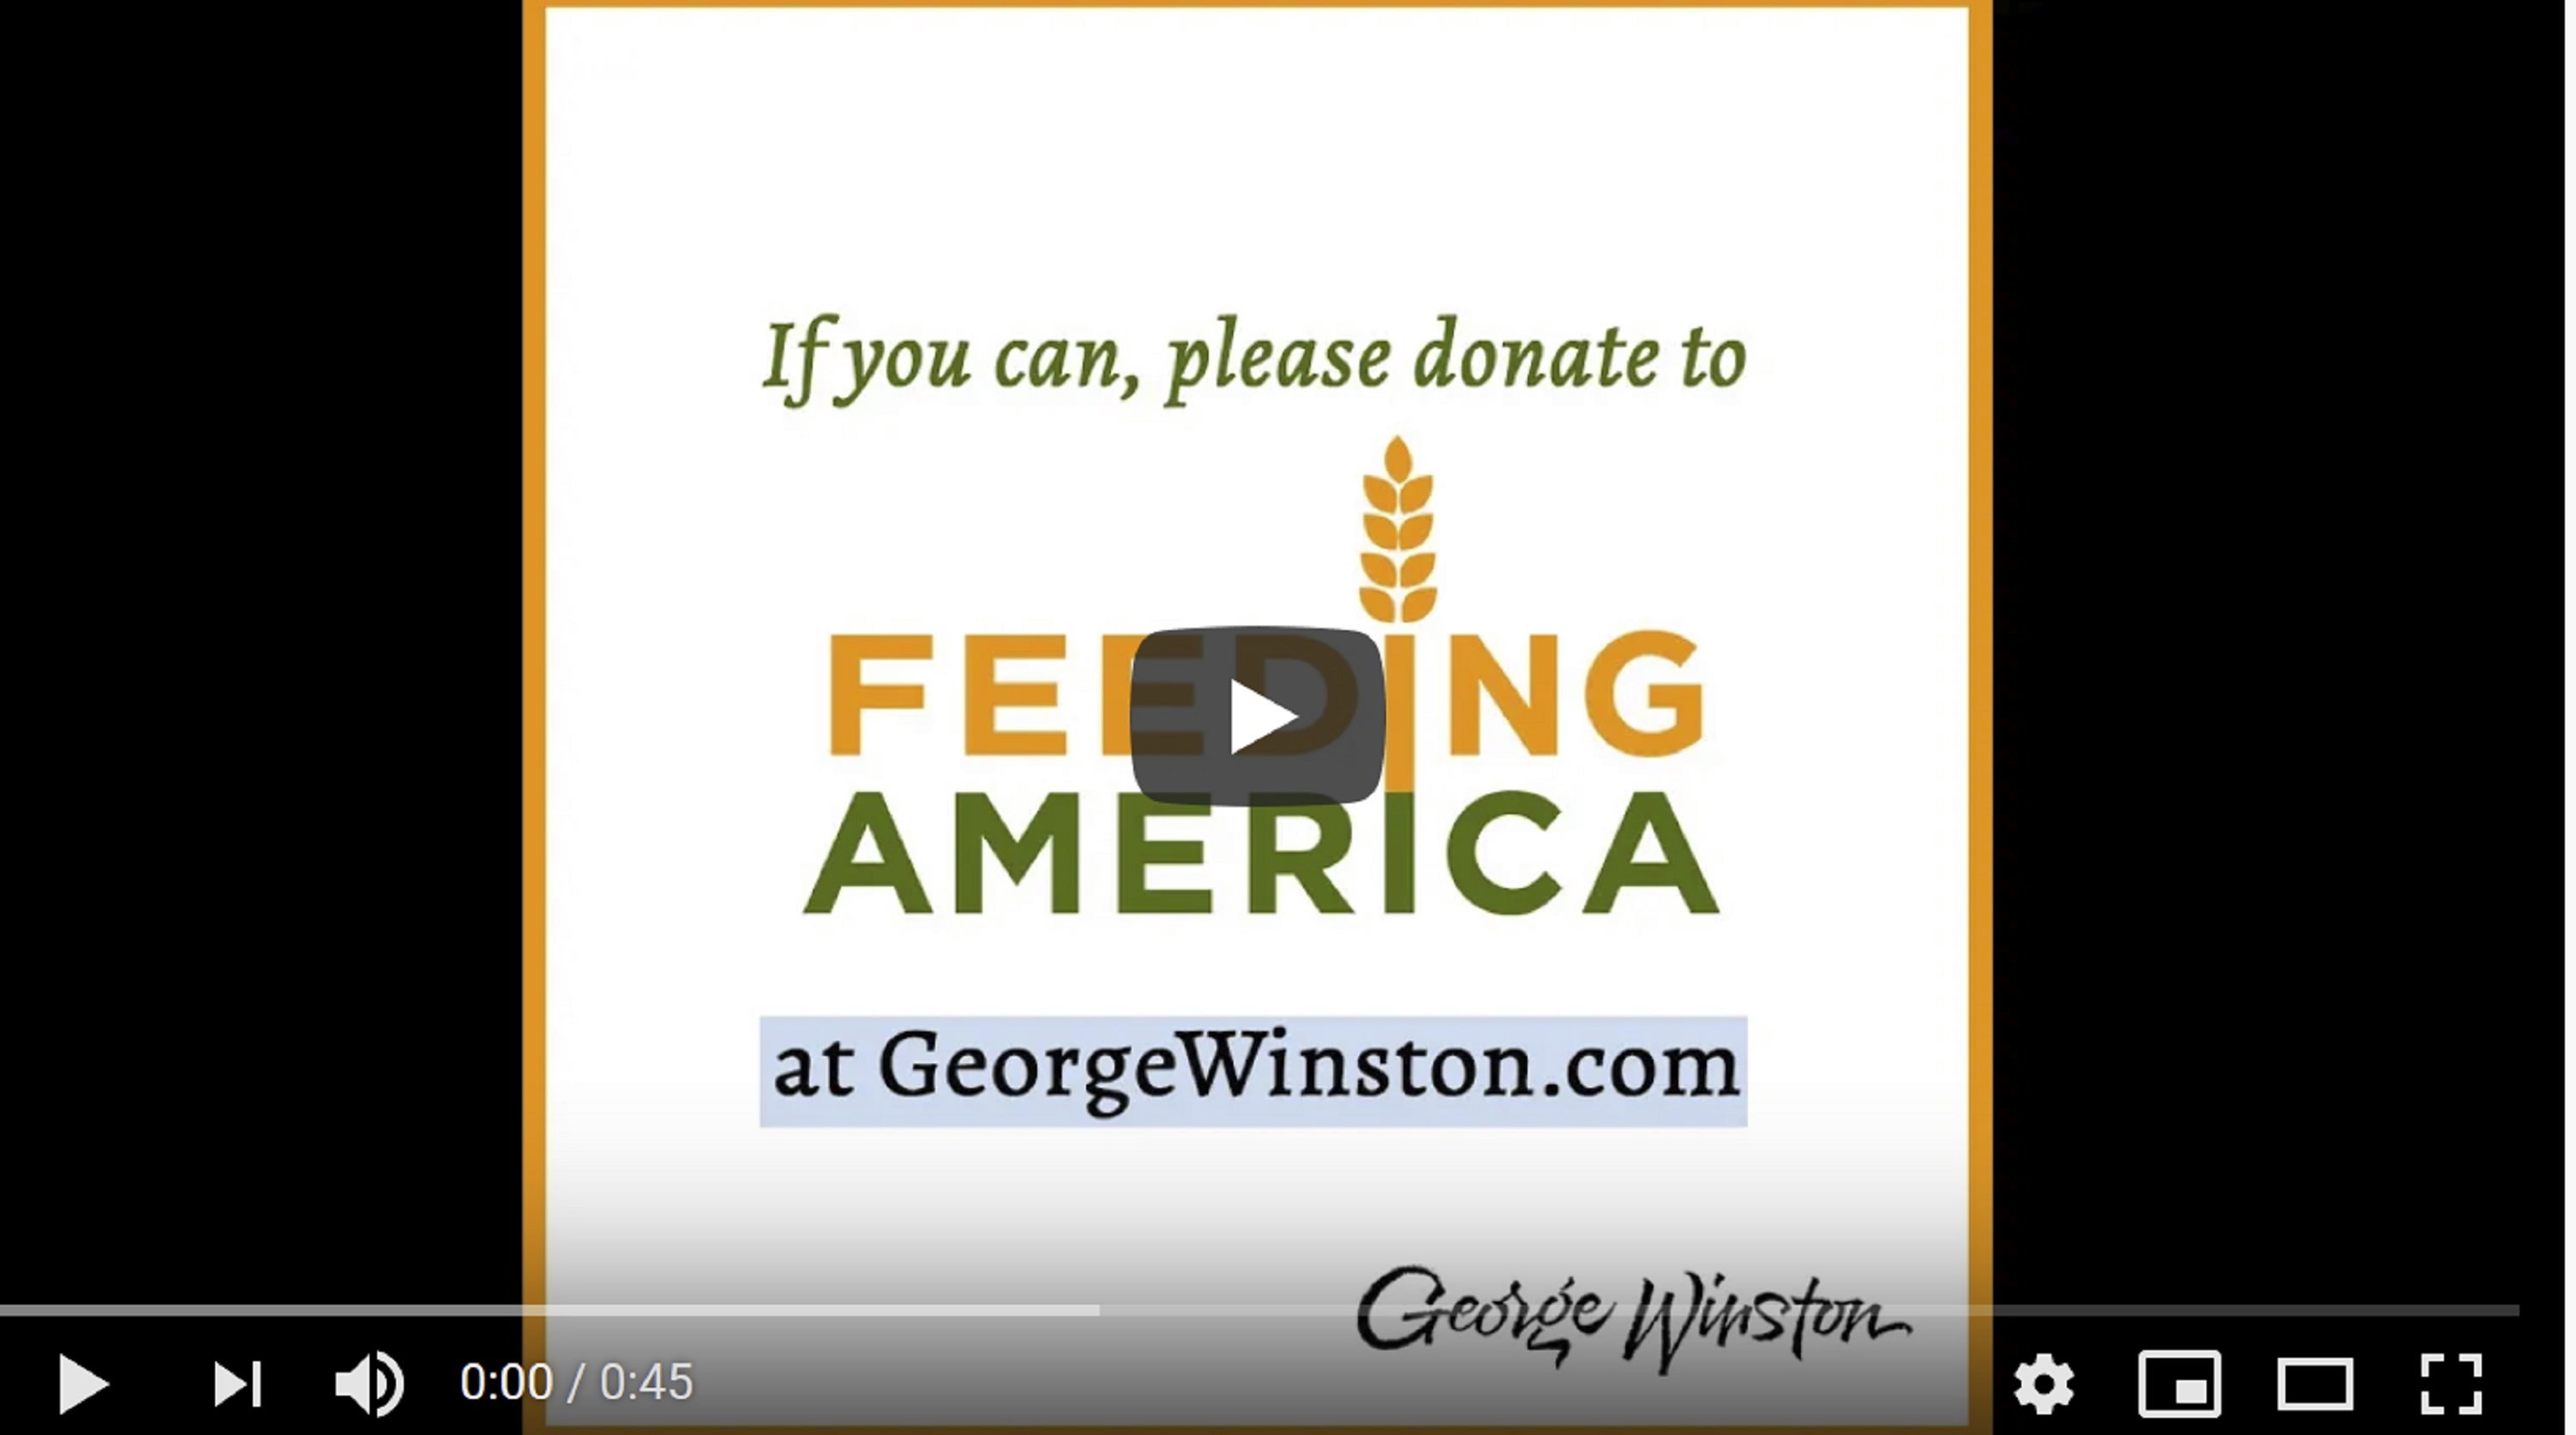 George Winston Releases Video Tribute to George Floyd